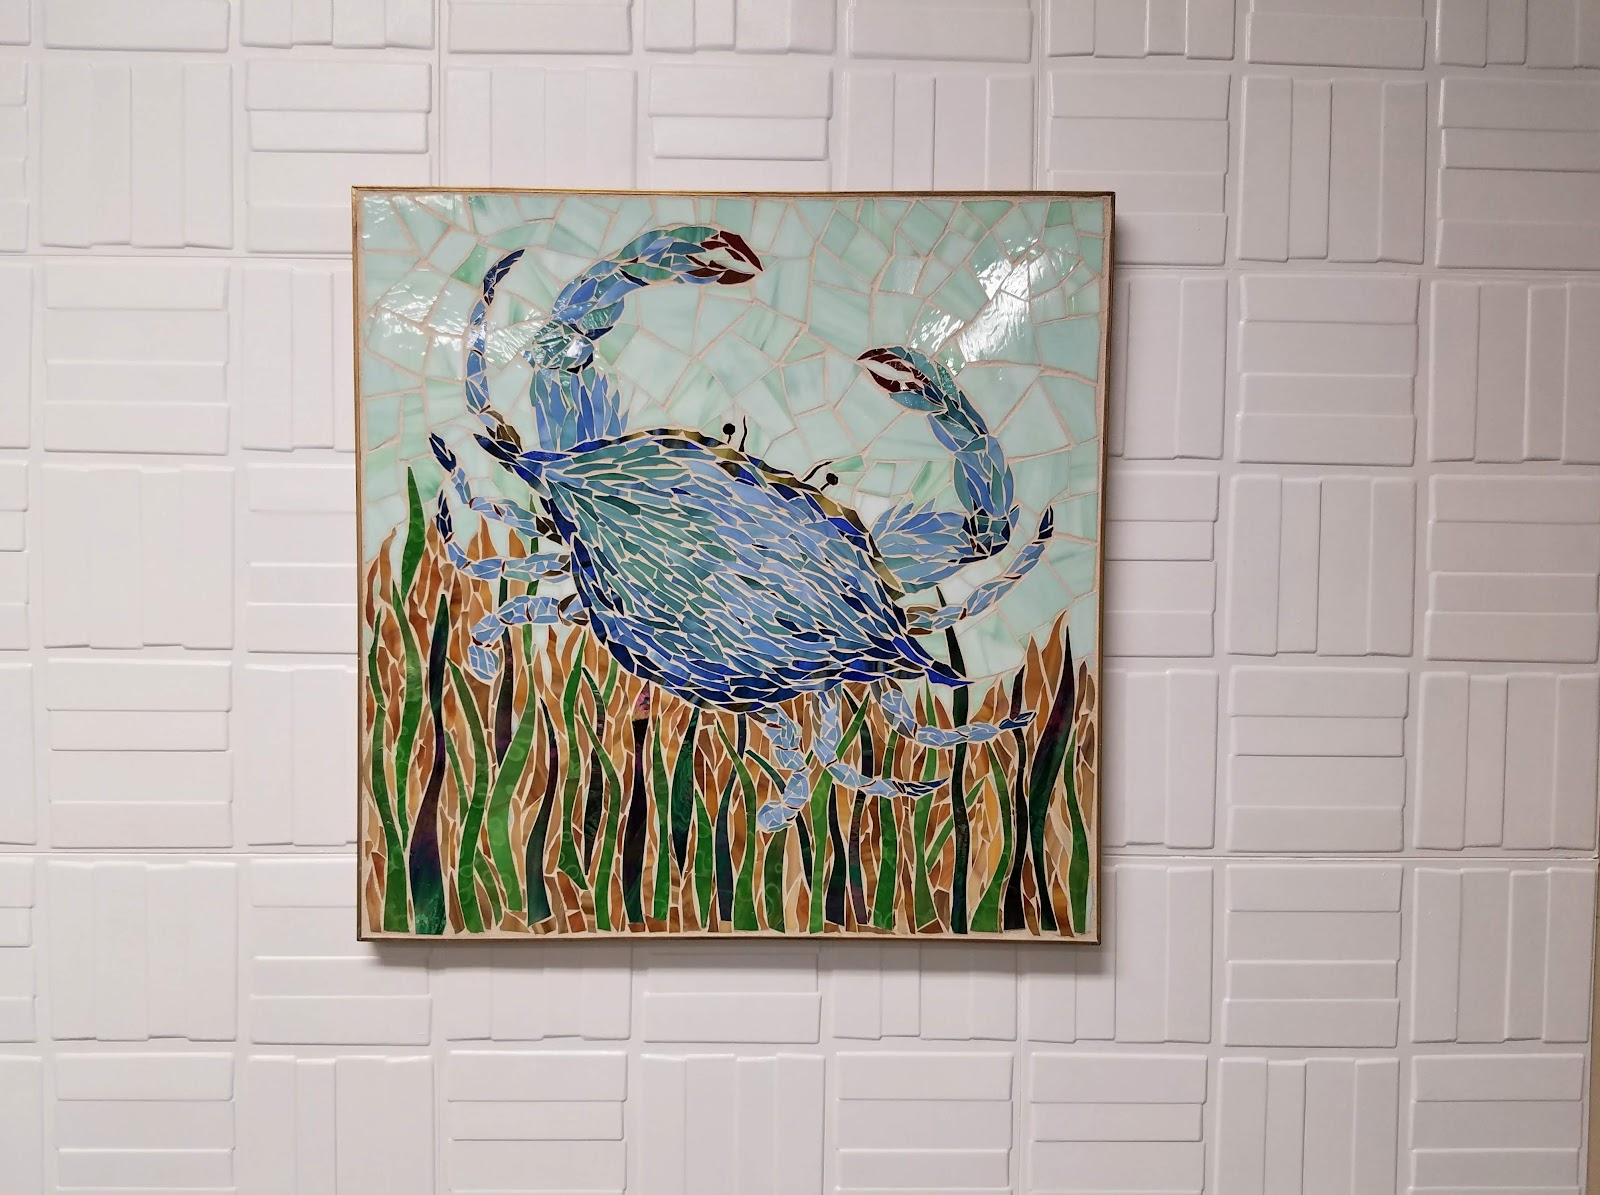 Best using wall panels for art wall